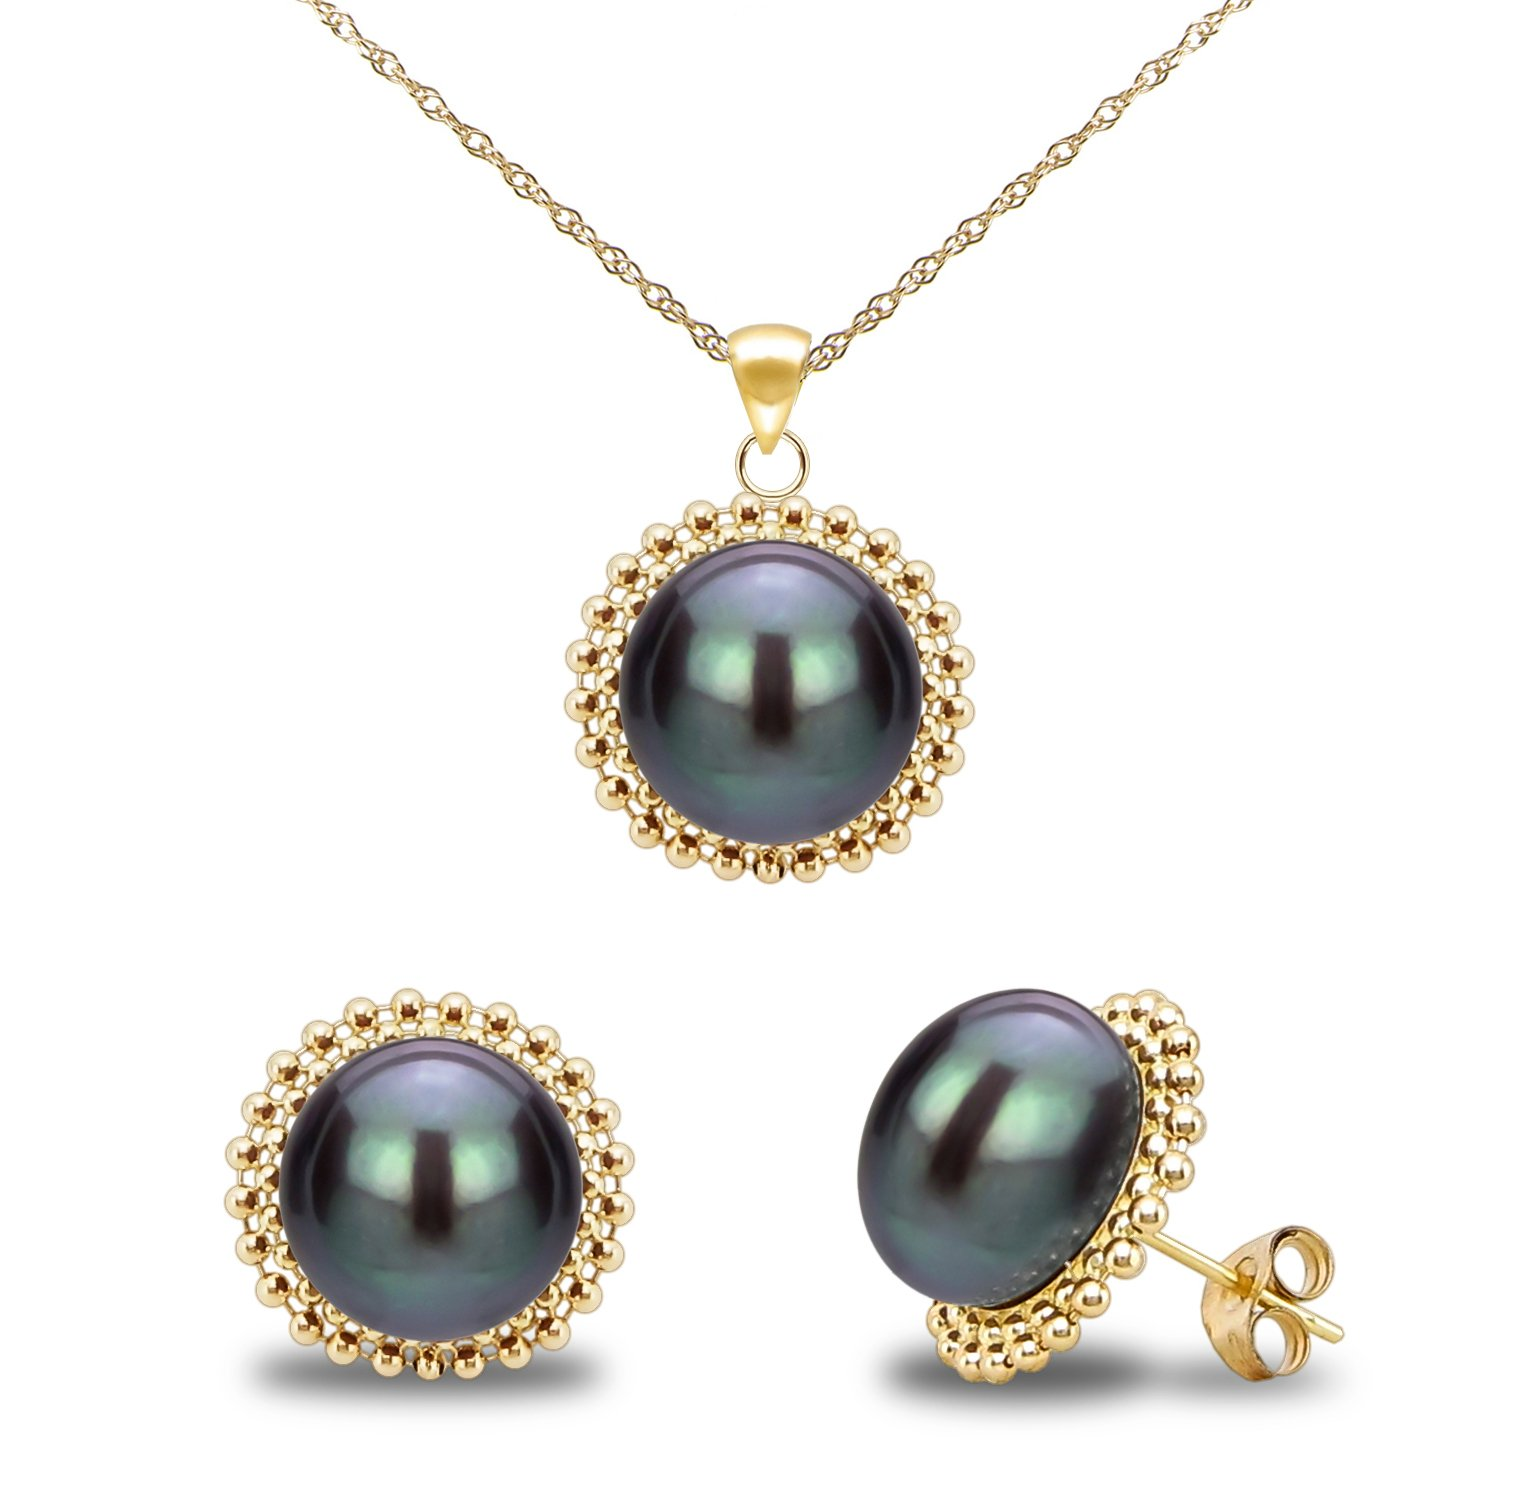 14k Yellow Gold 9-9.5mm Dyed-black Freshwater Cultured Pearl Beaded Pendant and Stud Earrings Set